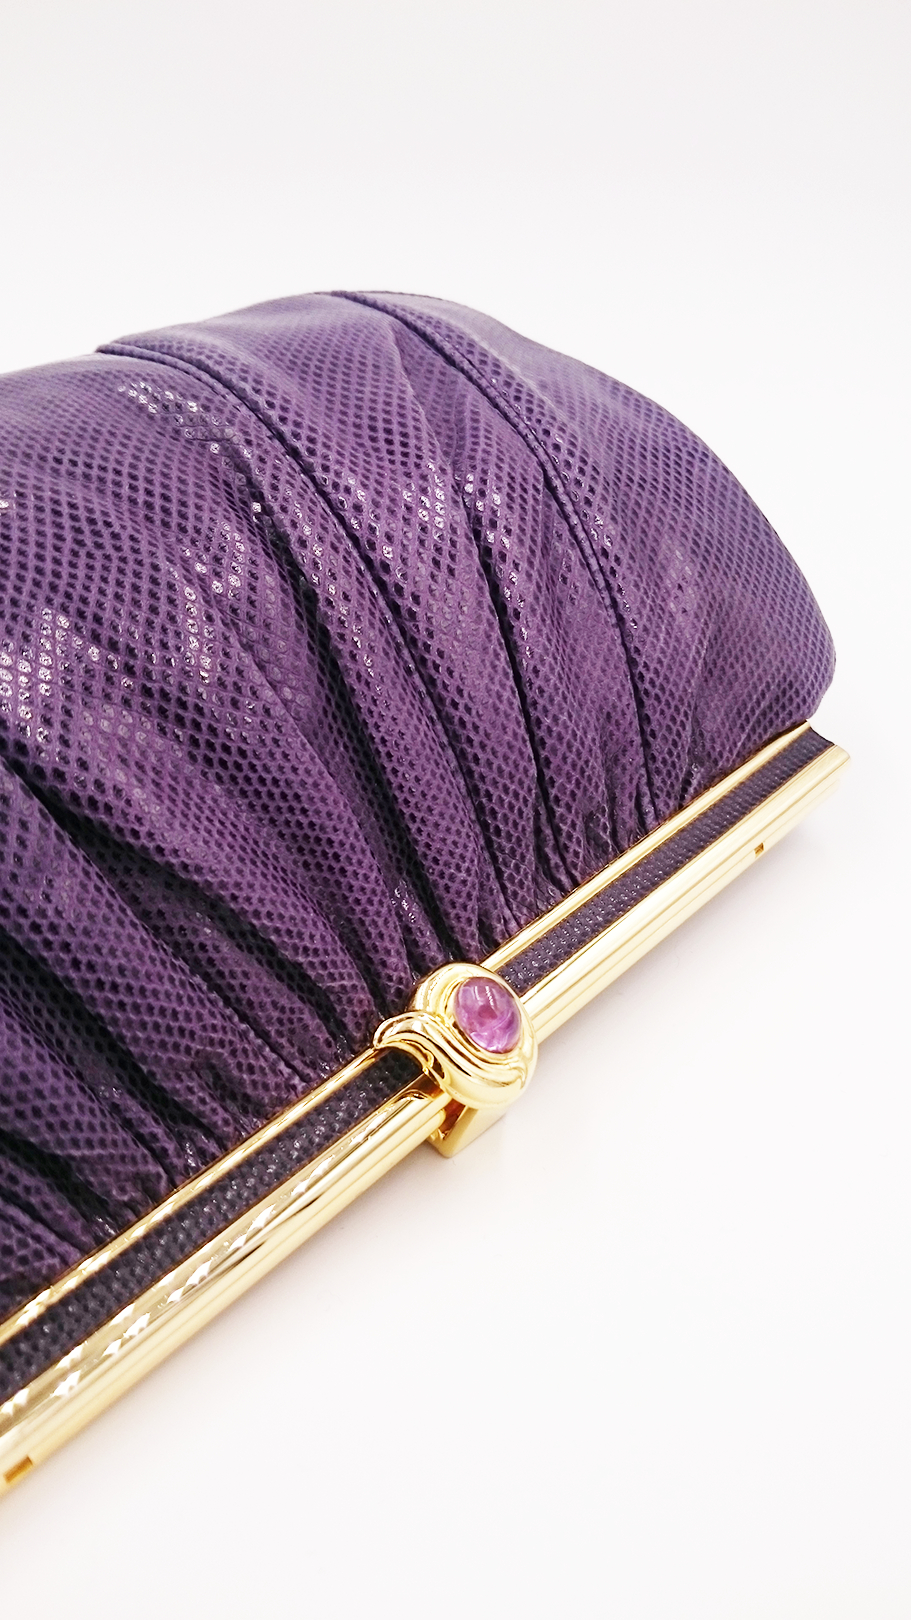 Purple Leiber bag